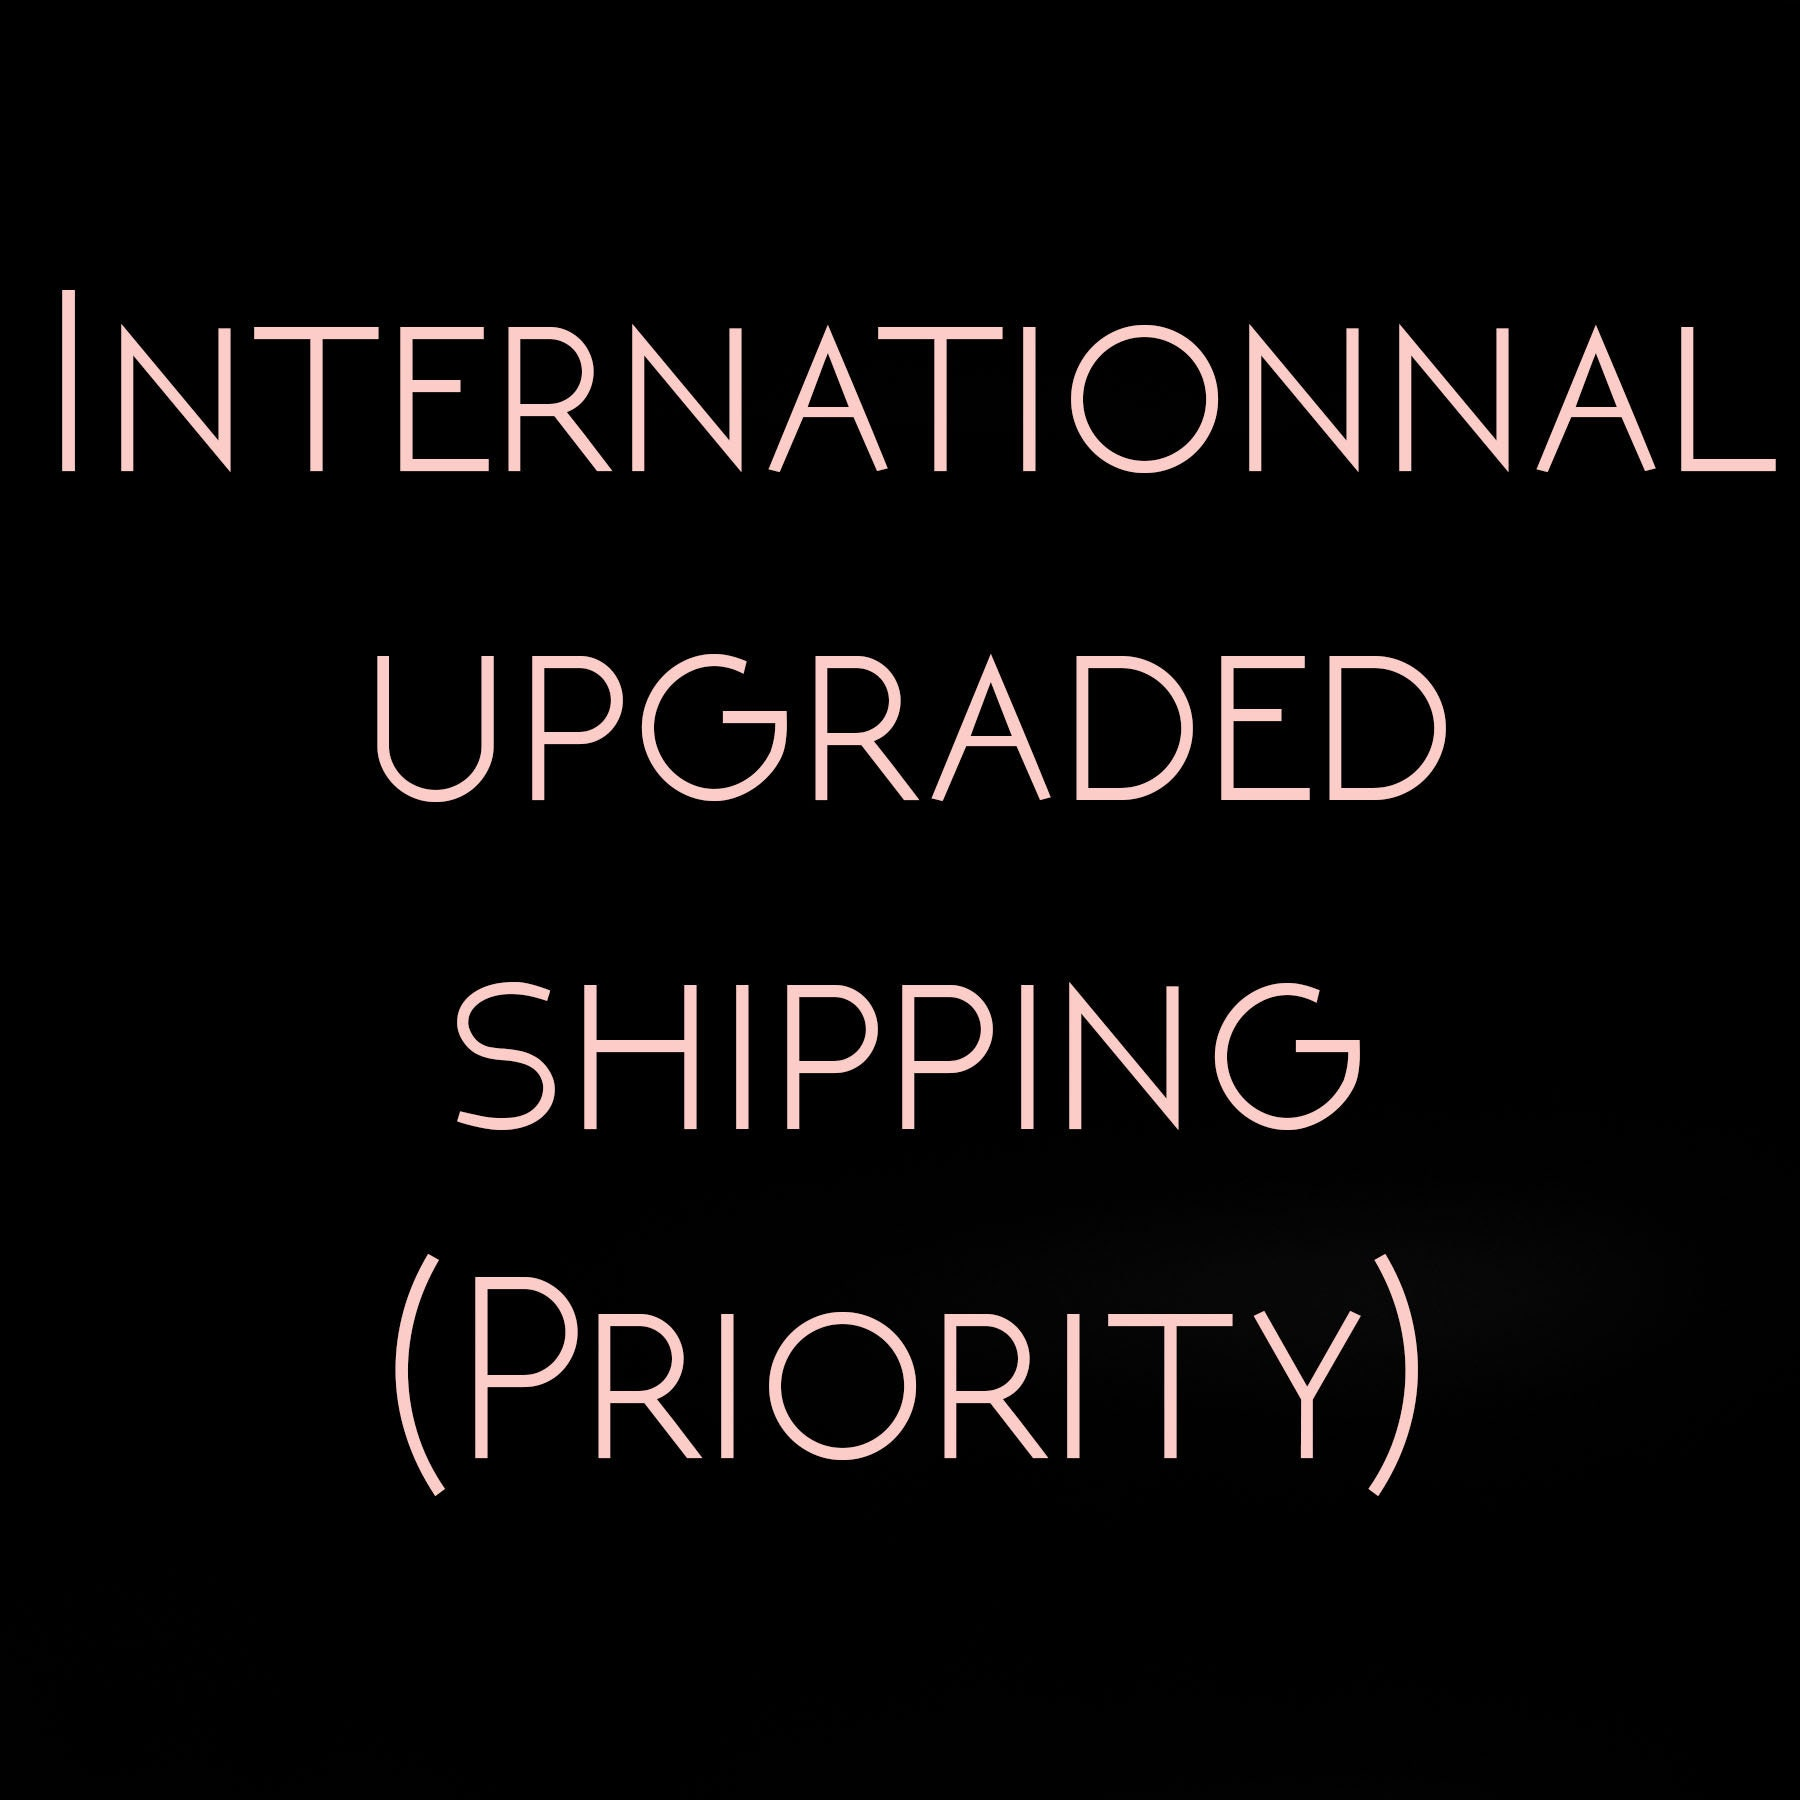 Rush Order and Shipping Upgrade Internationnal, Ready to Ship ...